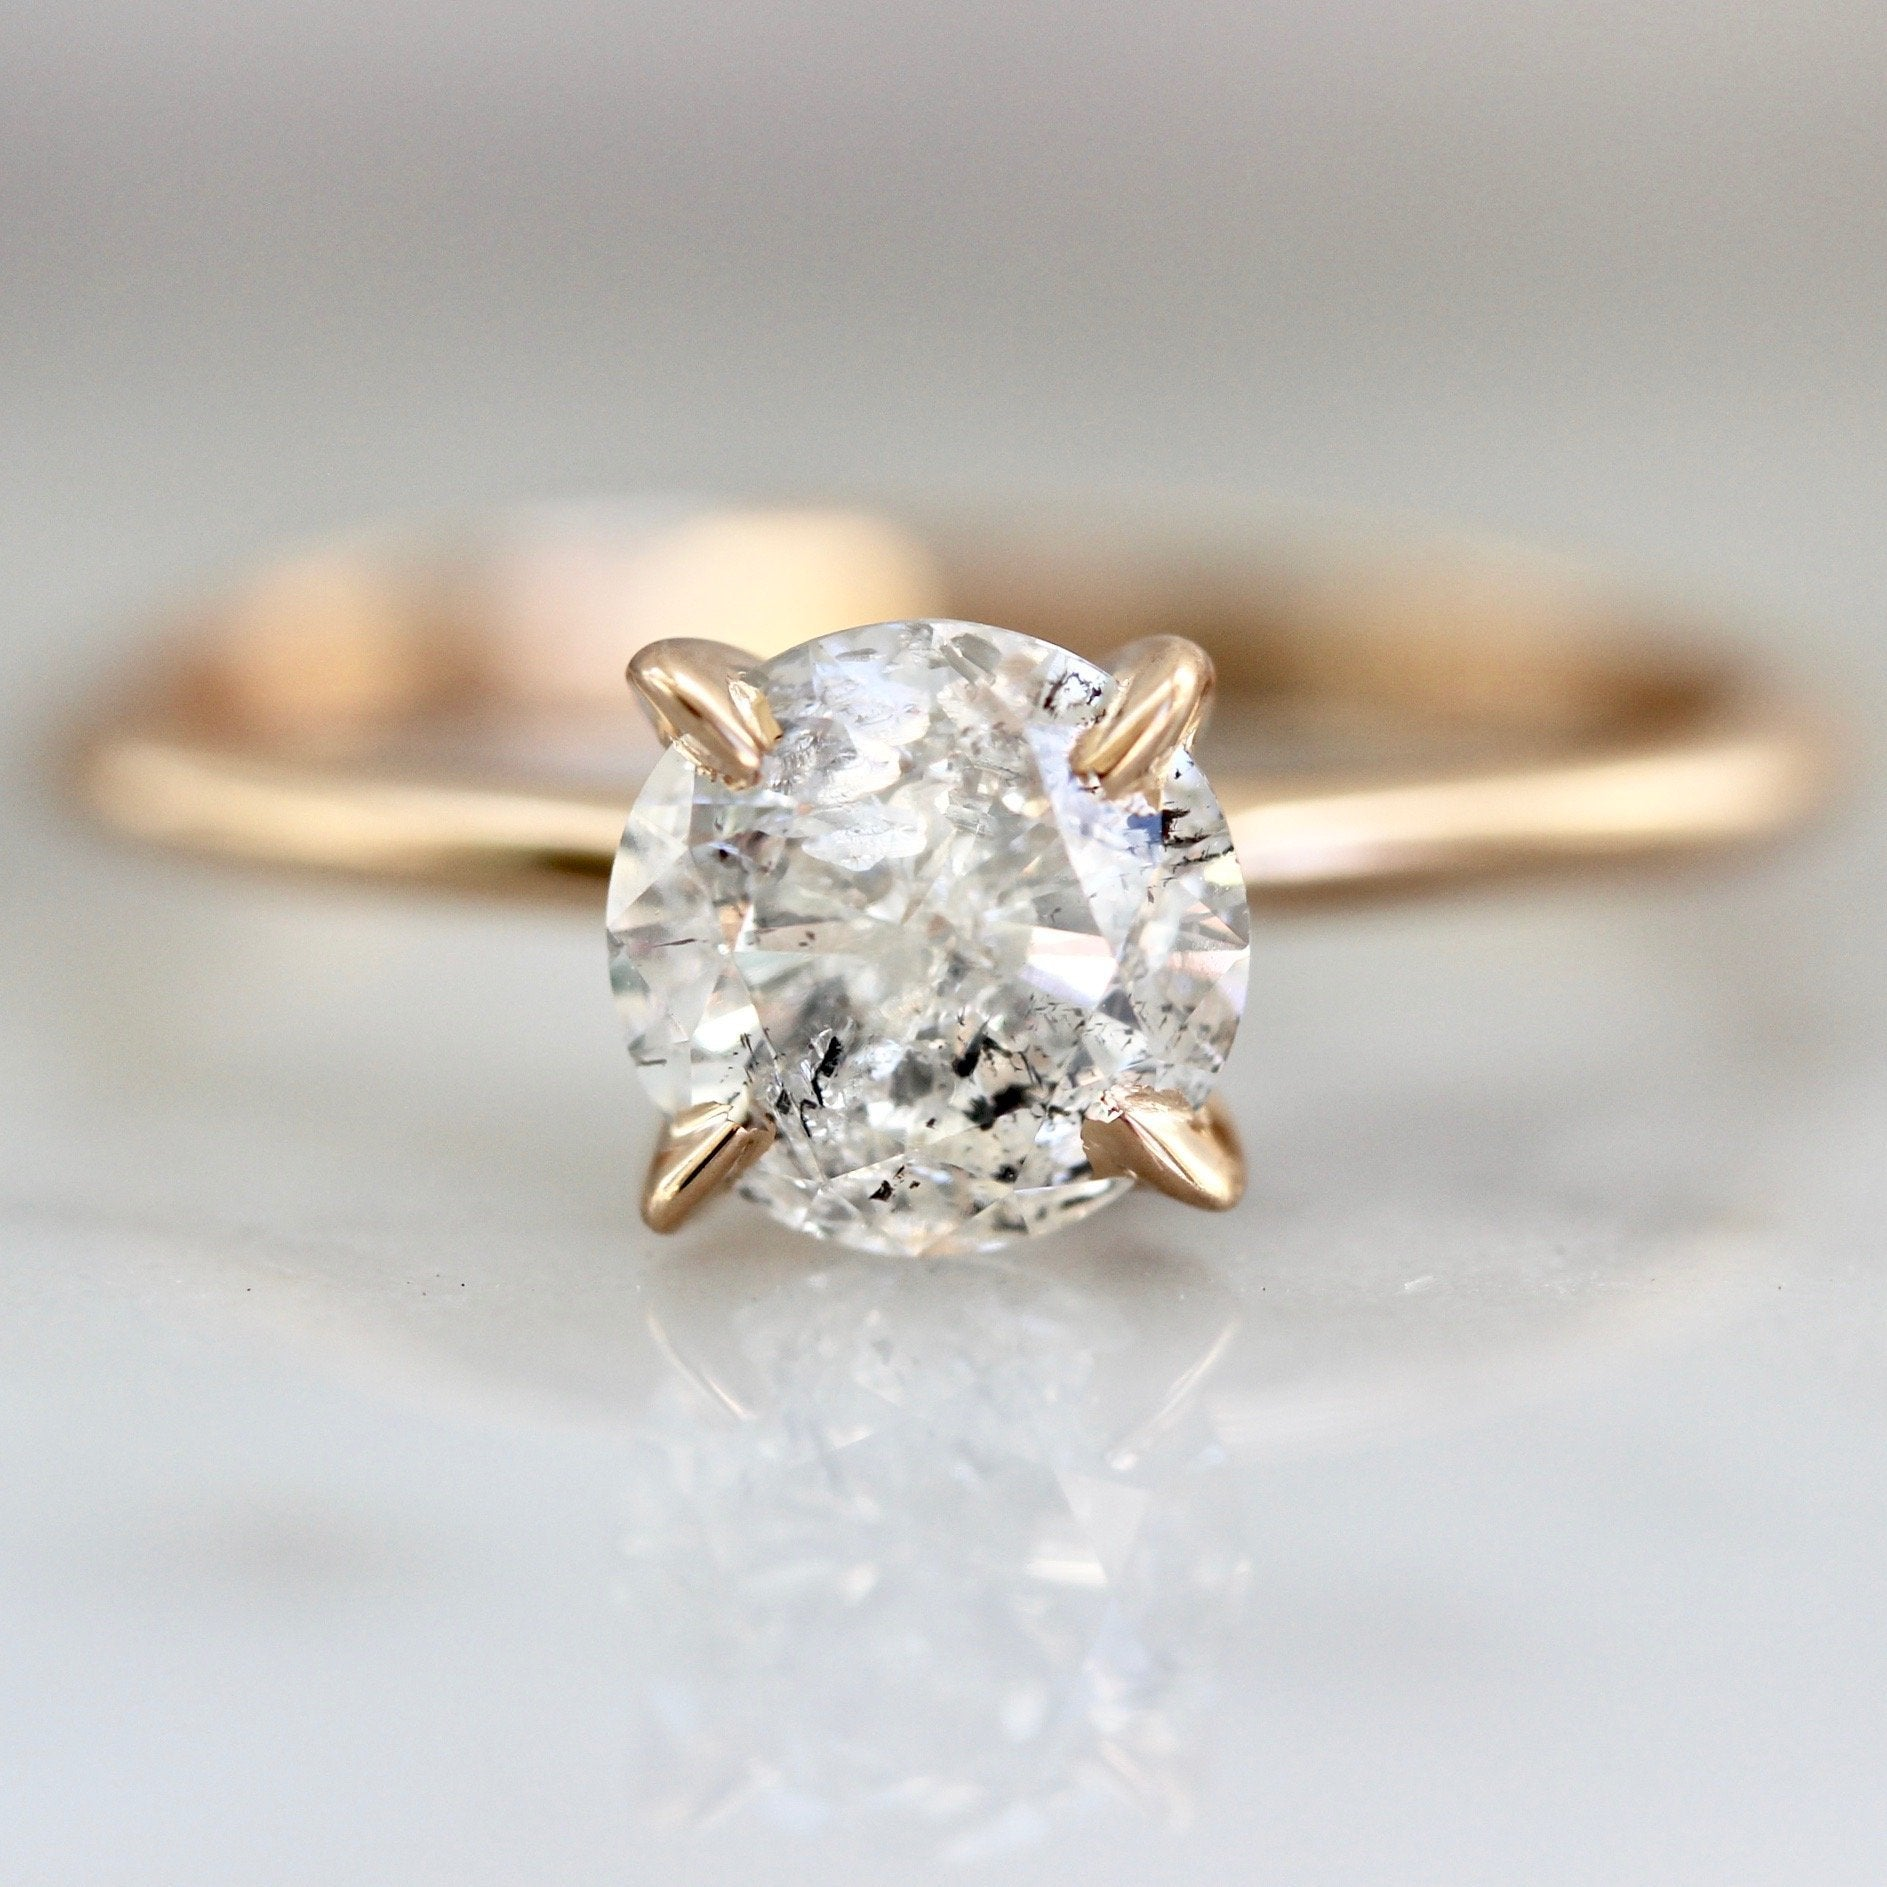 Gem Breakfast Bespoke Ring Current Ring Size 6.5 Ice Stella Diamond Ring